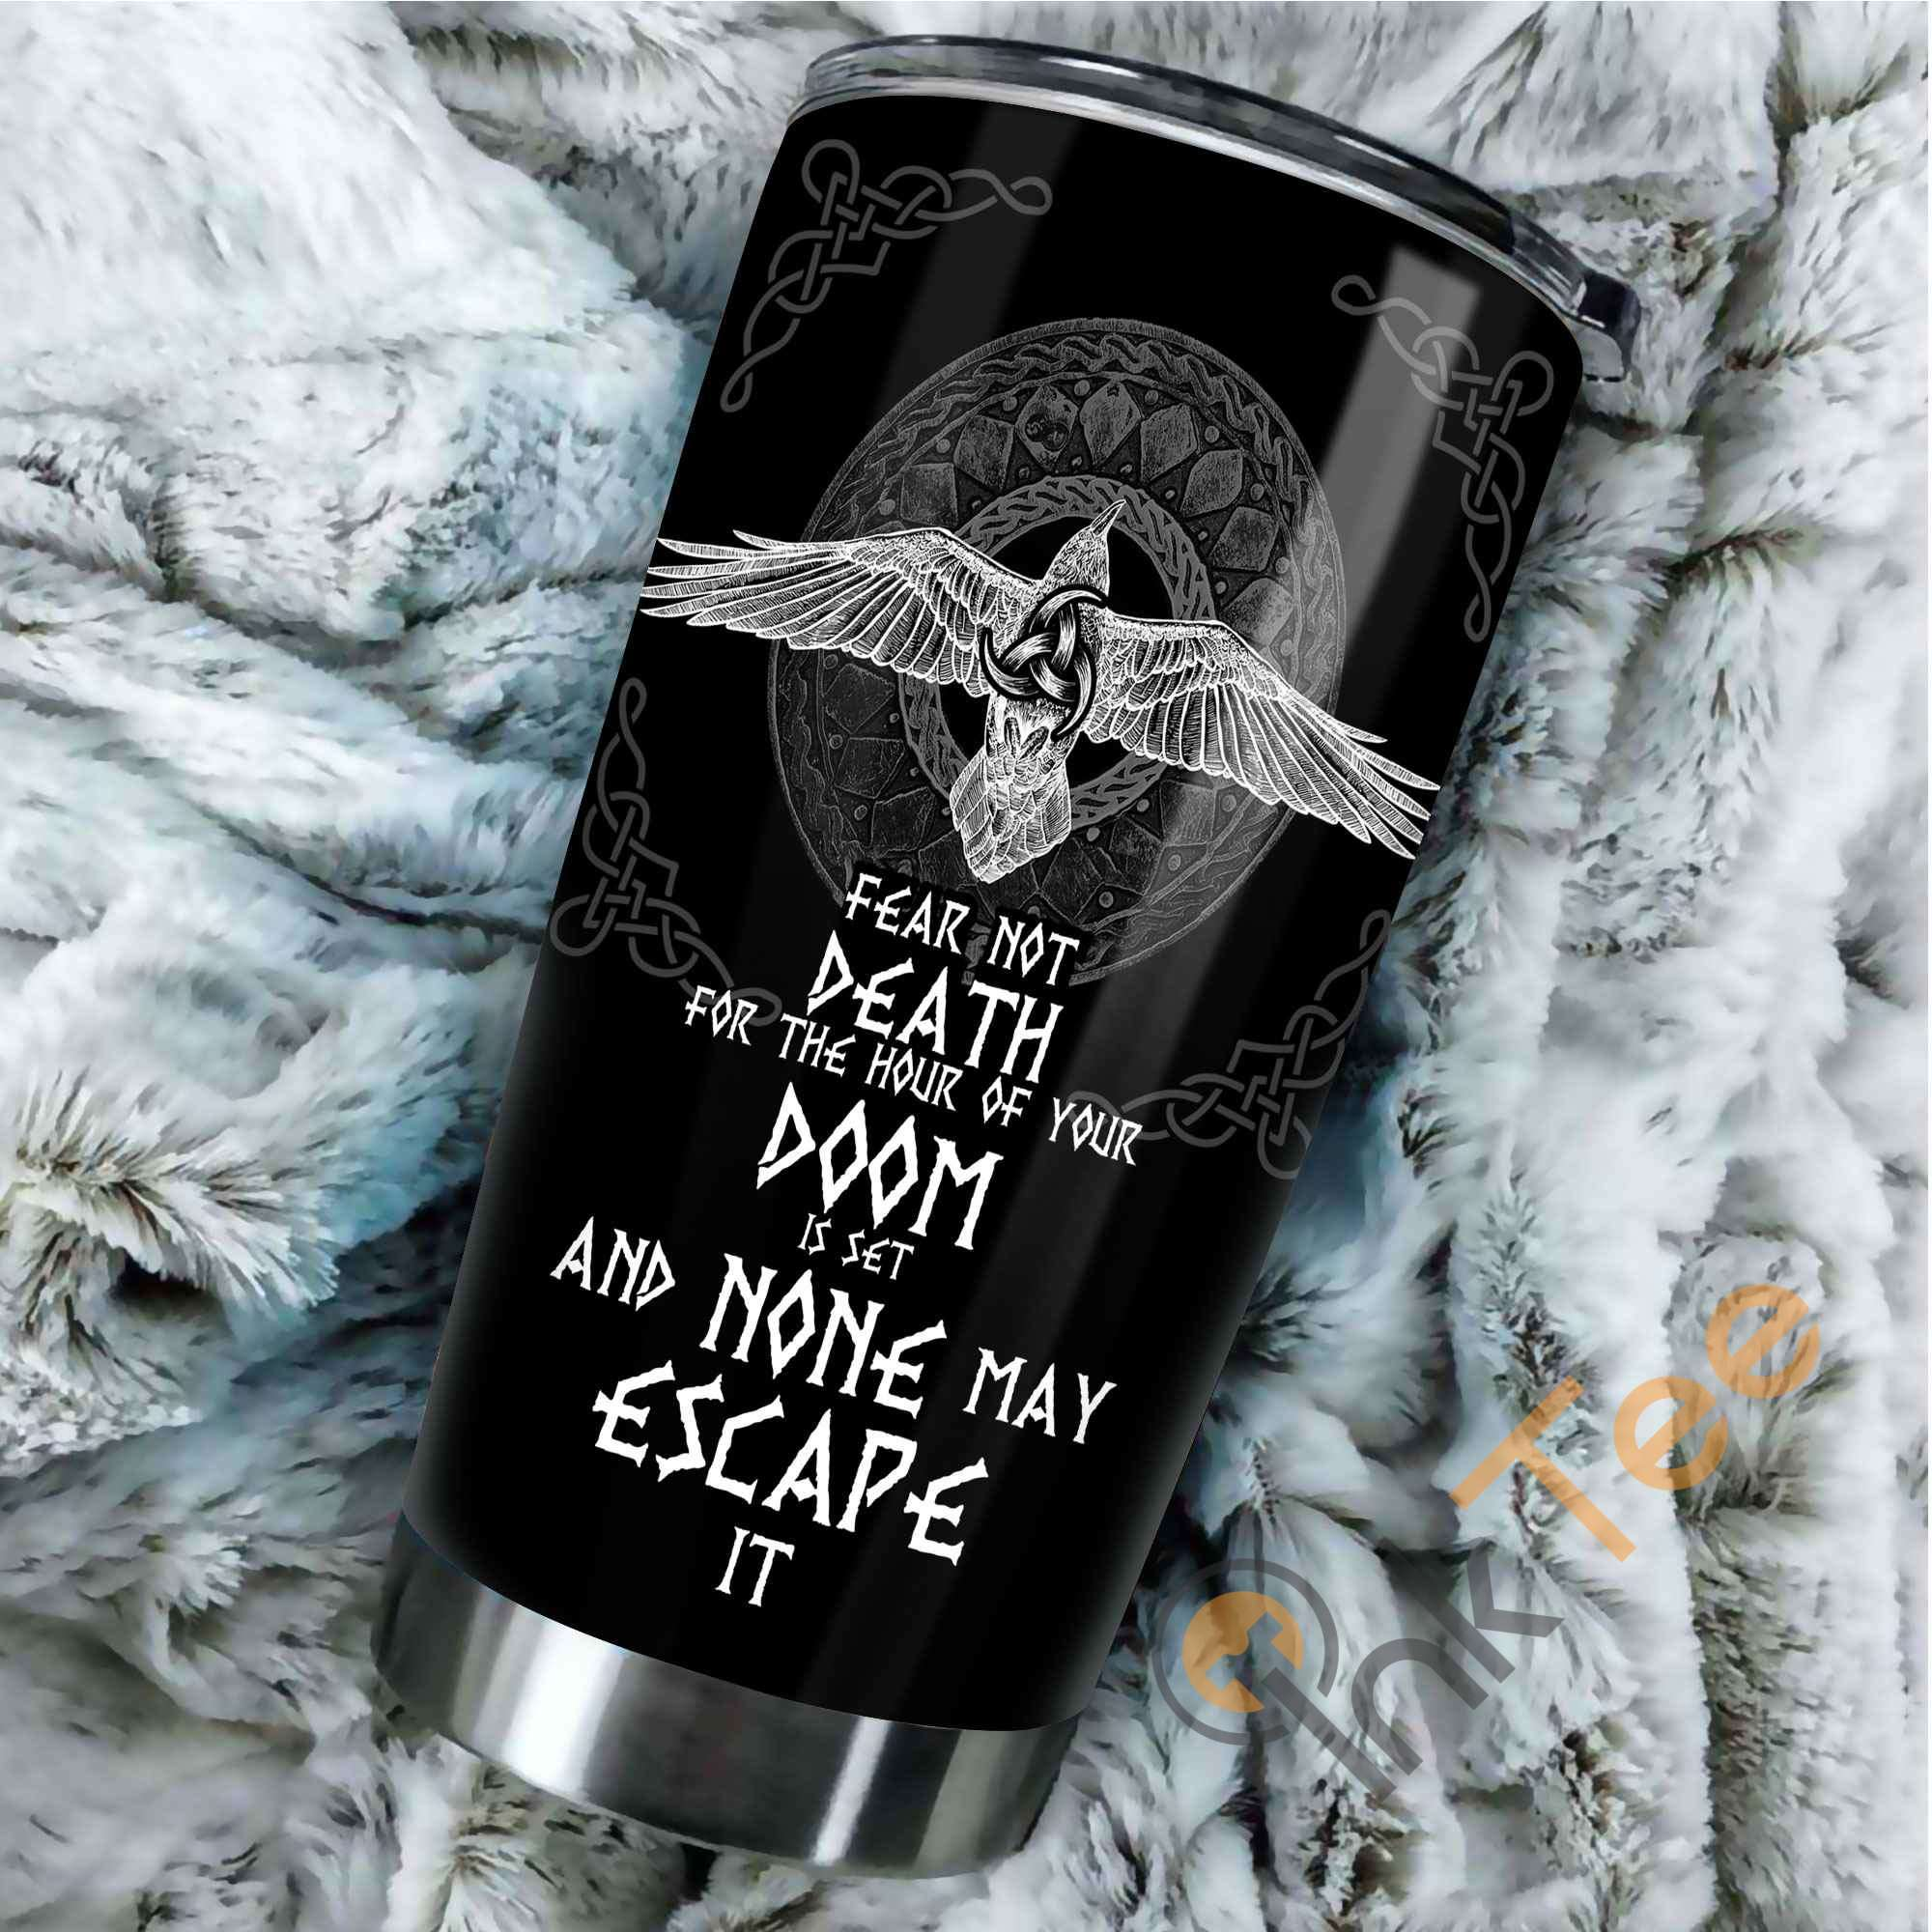 Fear Not Death For The Hour Of Your Doom Stainless Steel Tumbler